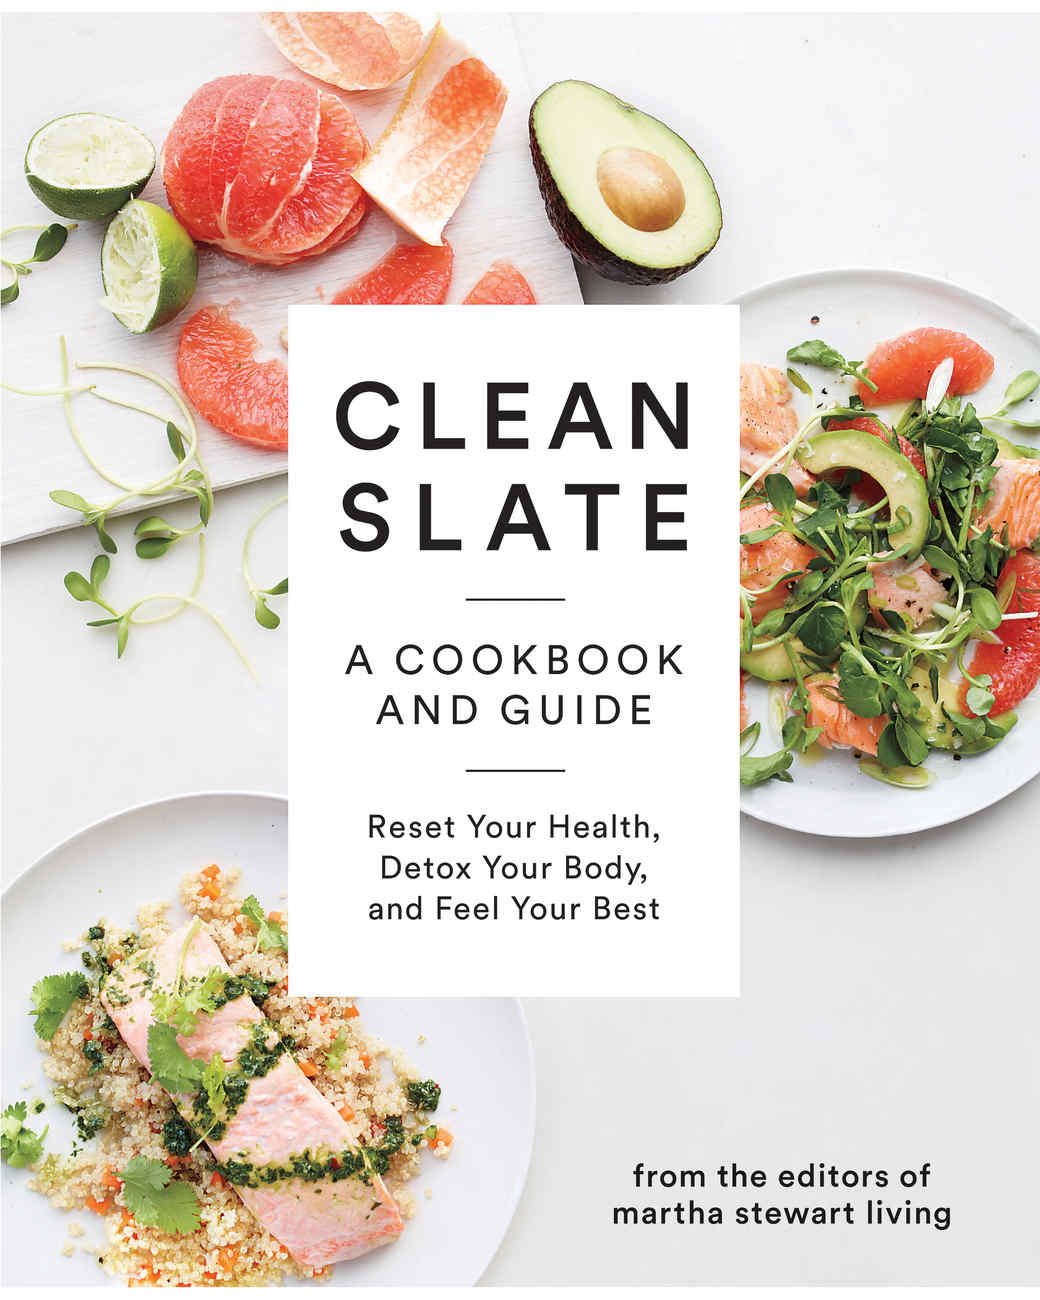 Clean slate a sneak peek of our newest book martha stewart clean slate a sneak peek of our newest book martha stewart forumfinder Choice Image